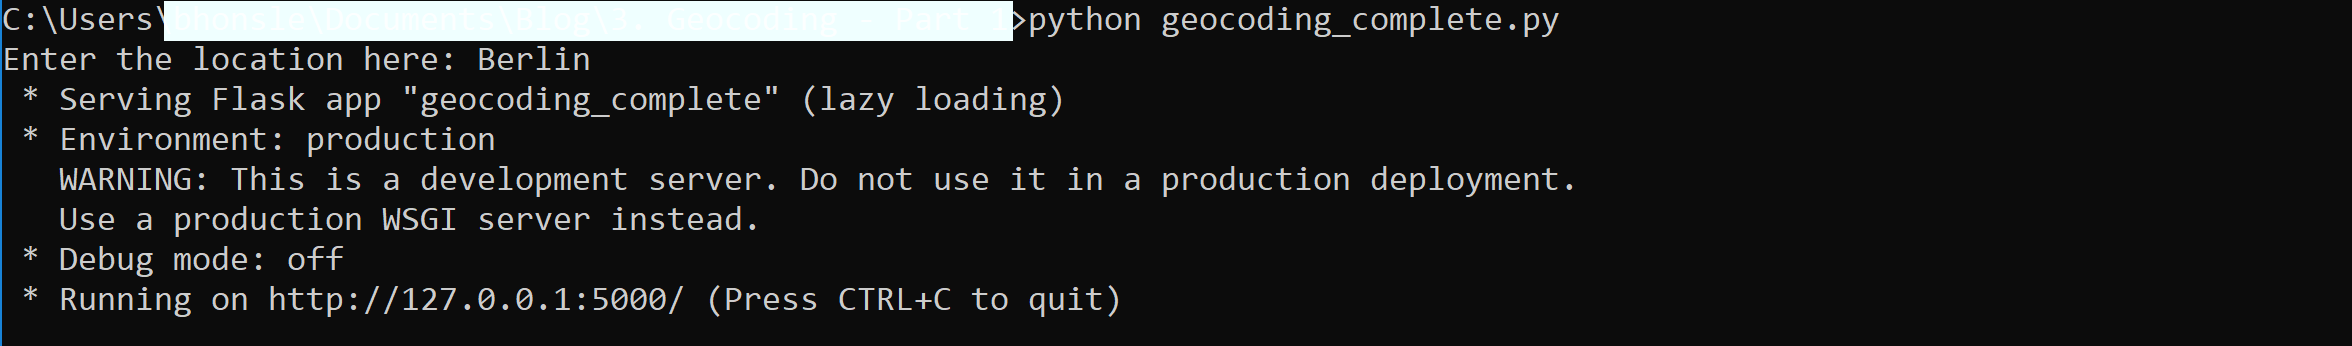 Running Python code on command prompt